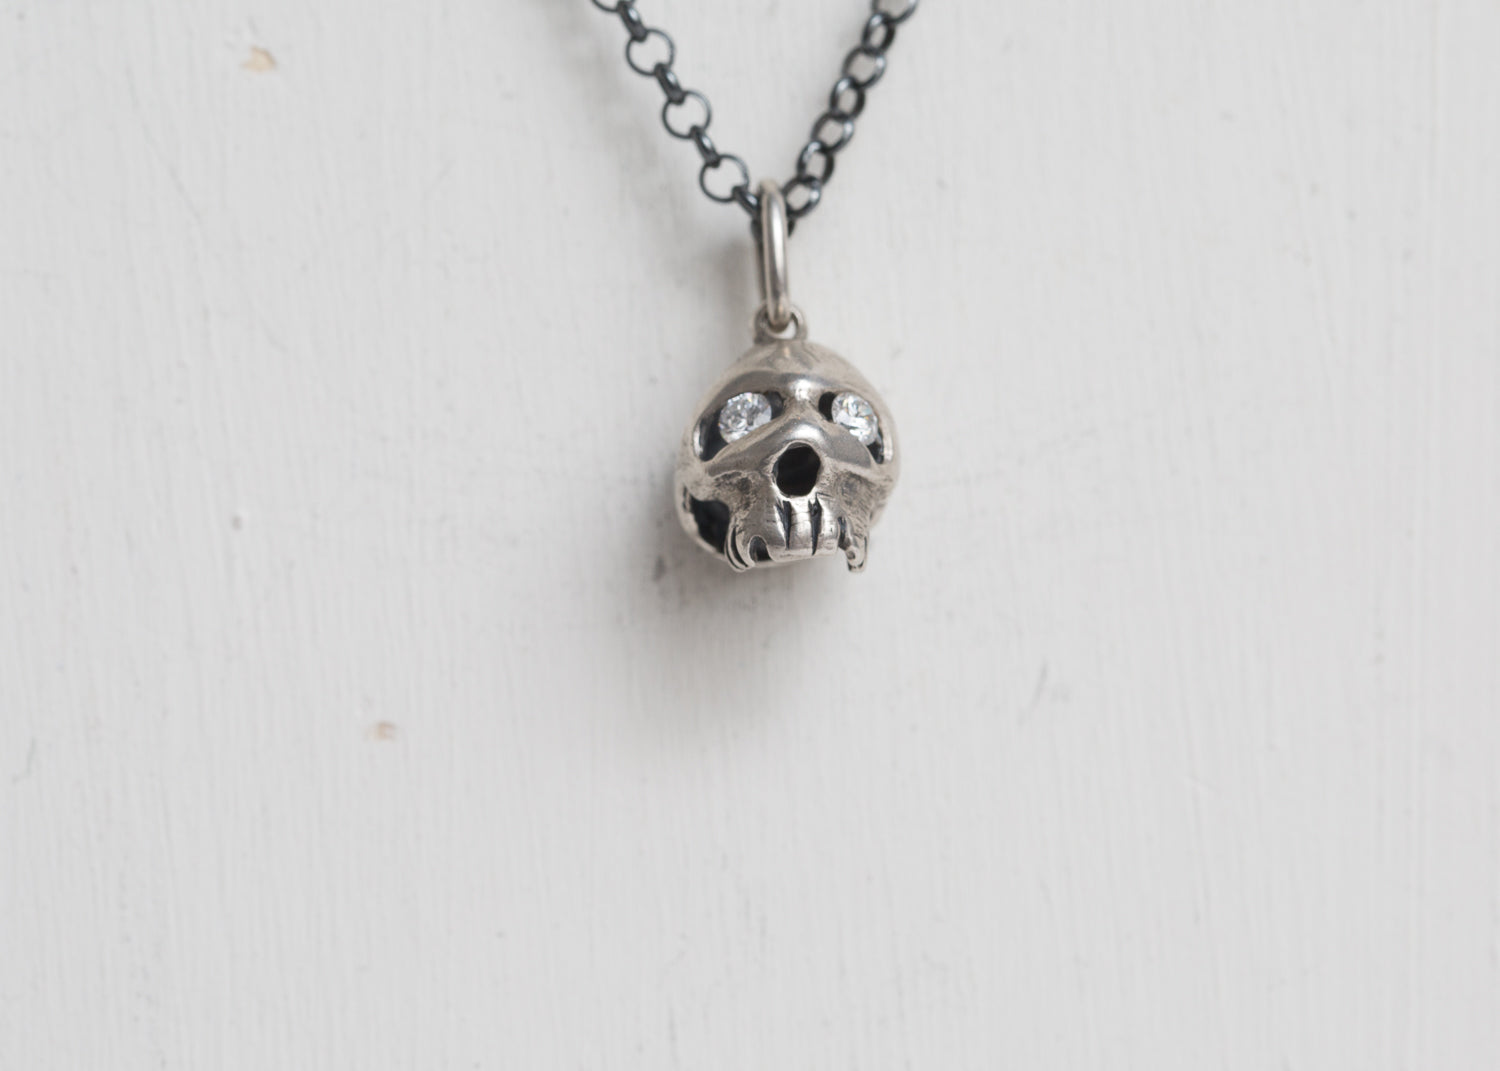 Erica Molinari Base Charm Large Hollow Skull